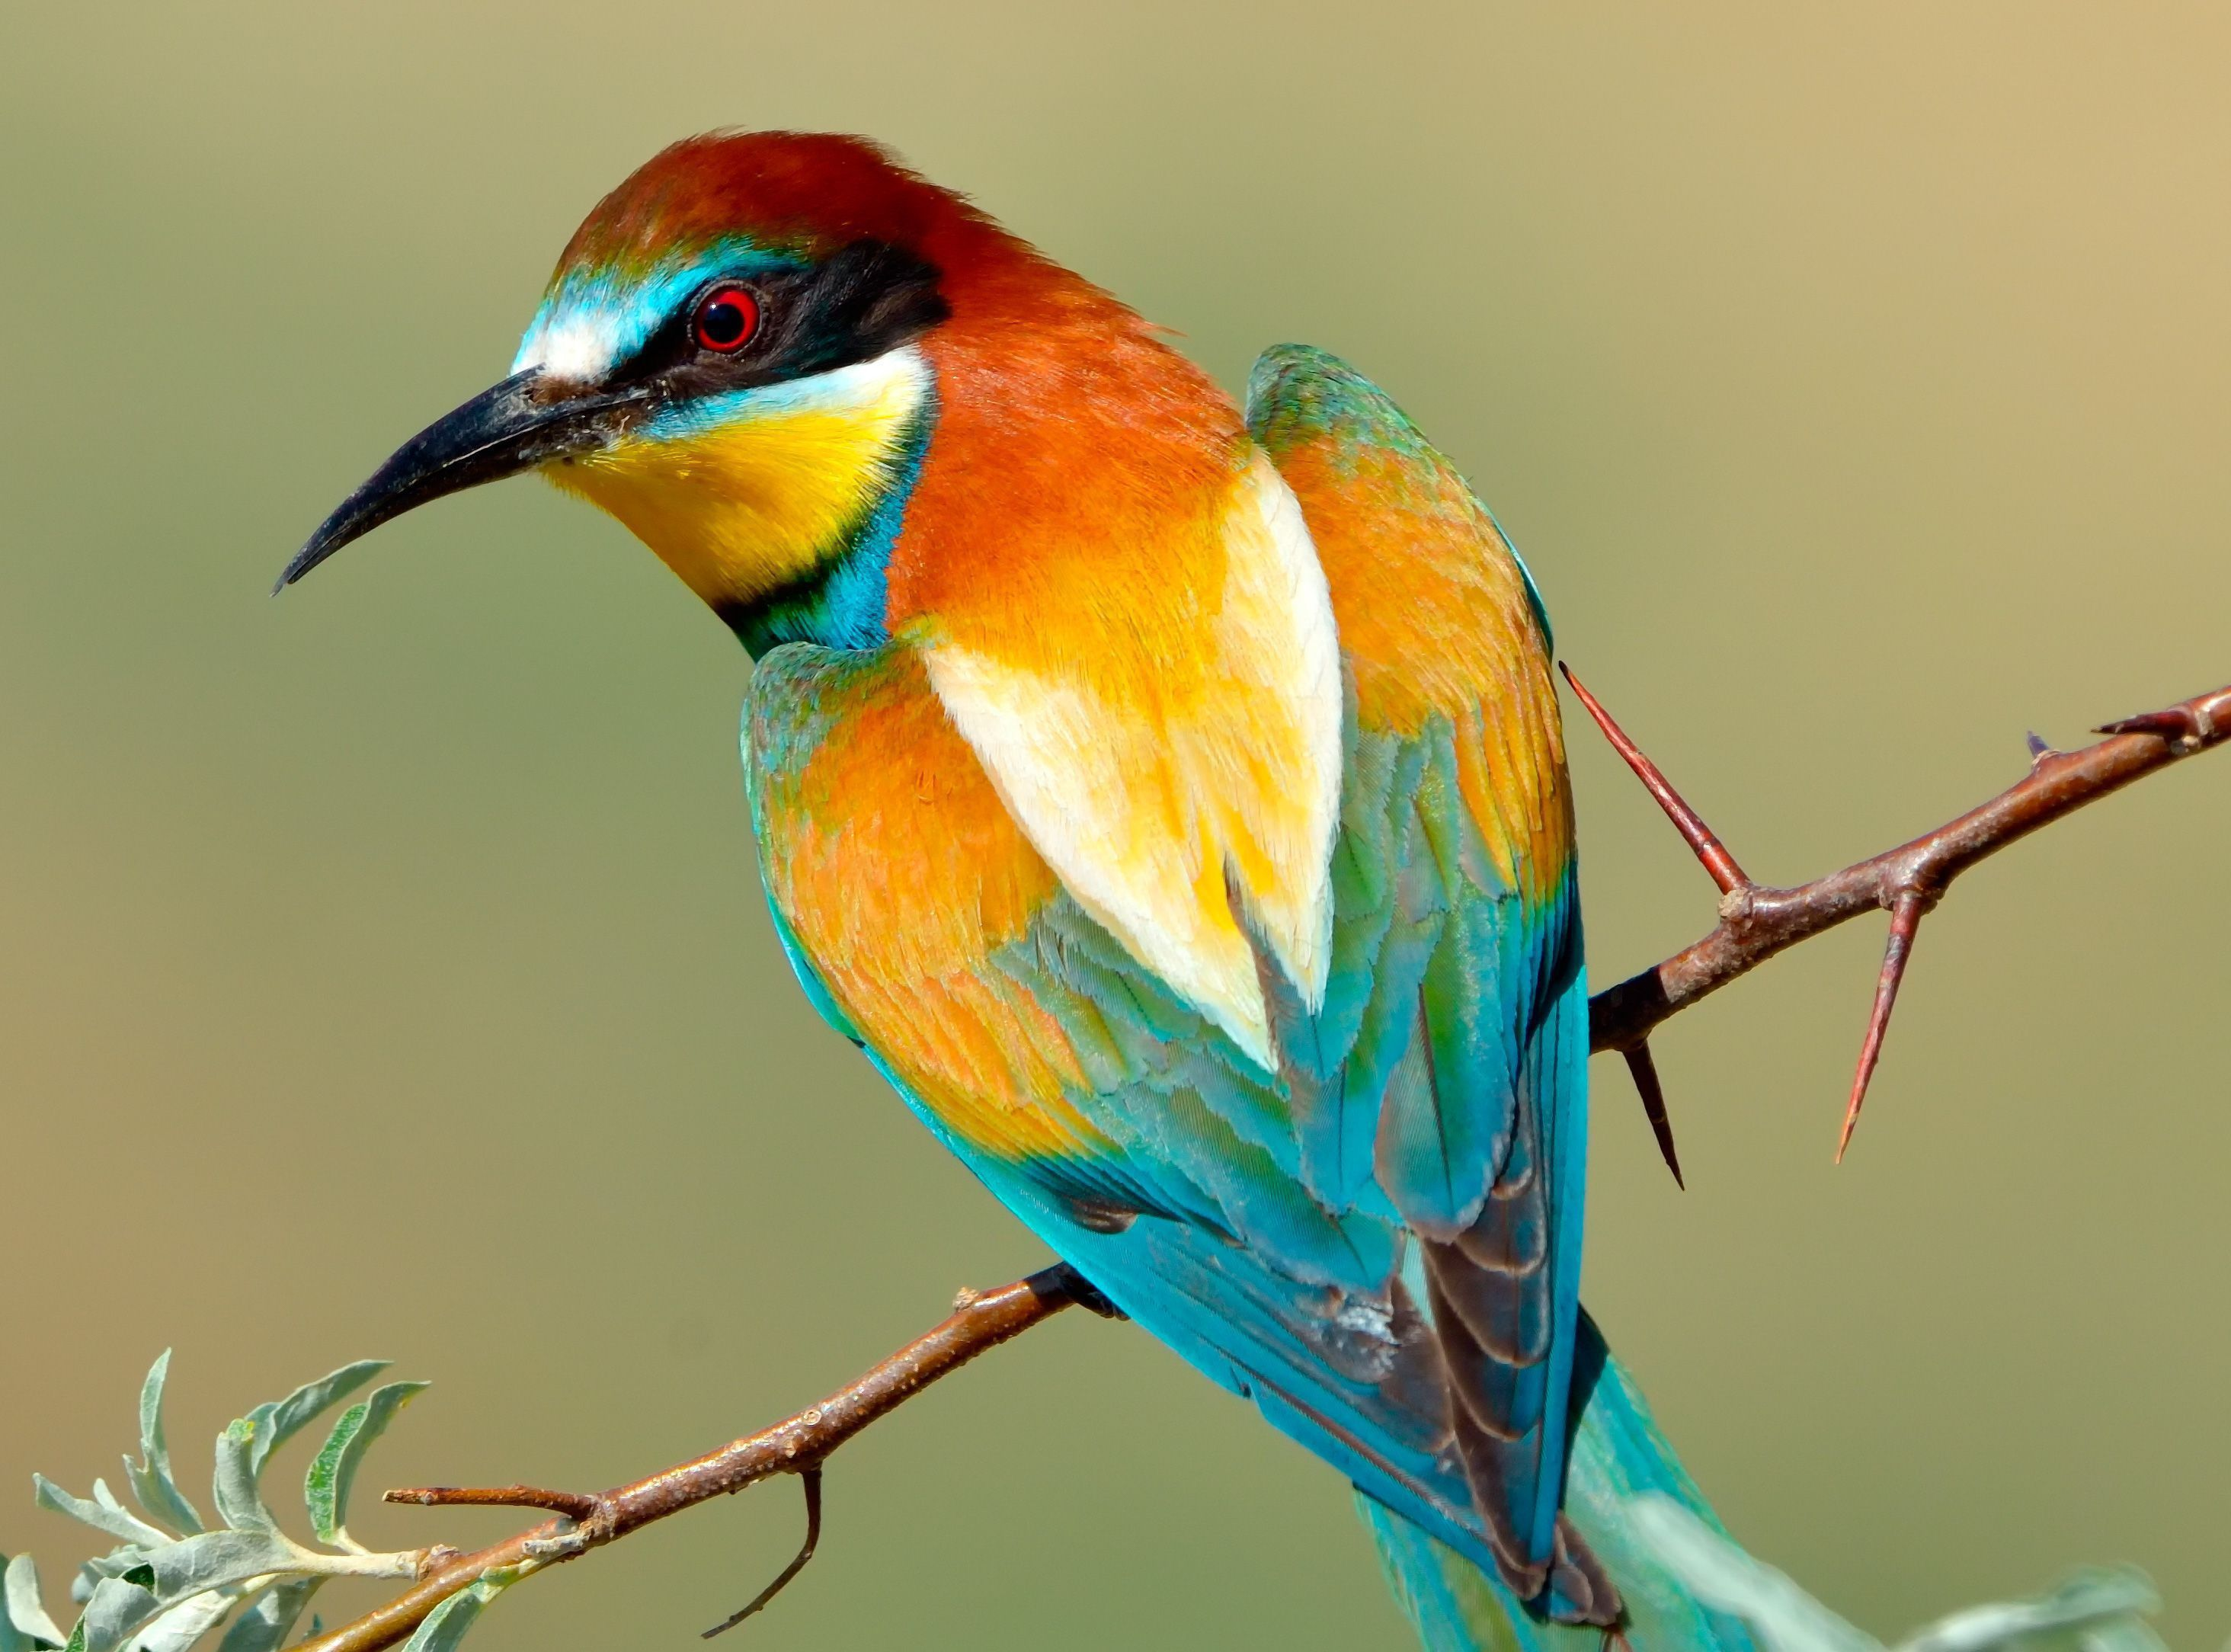 Aves Exoticas Wallpaper Pack